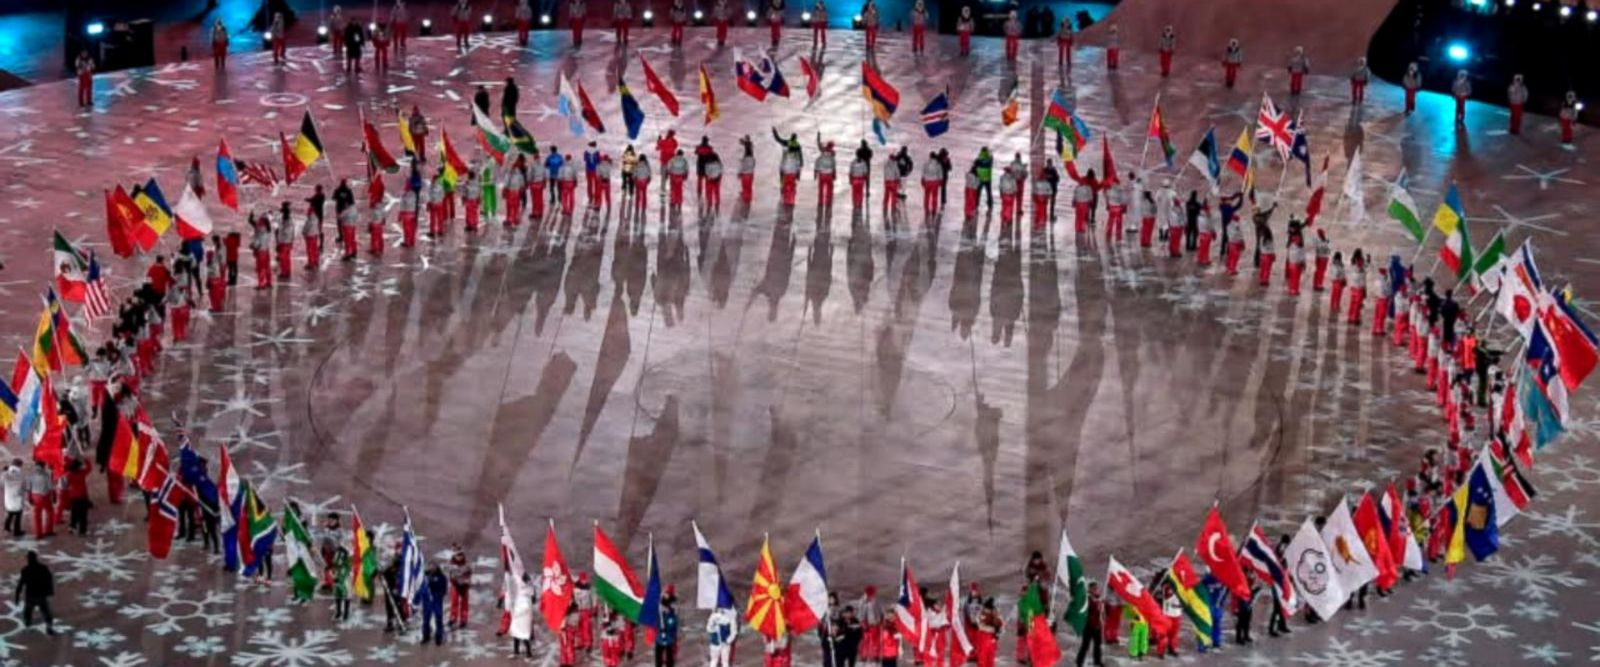 VIDEO: The best moments from the Winter Games